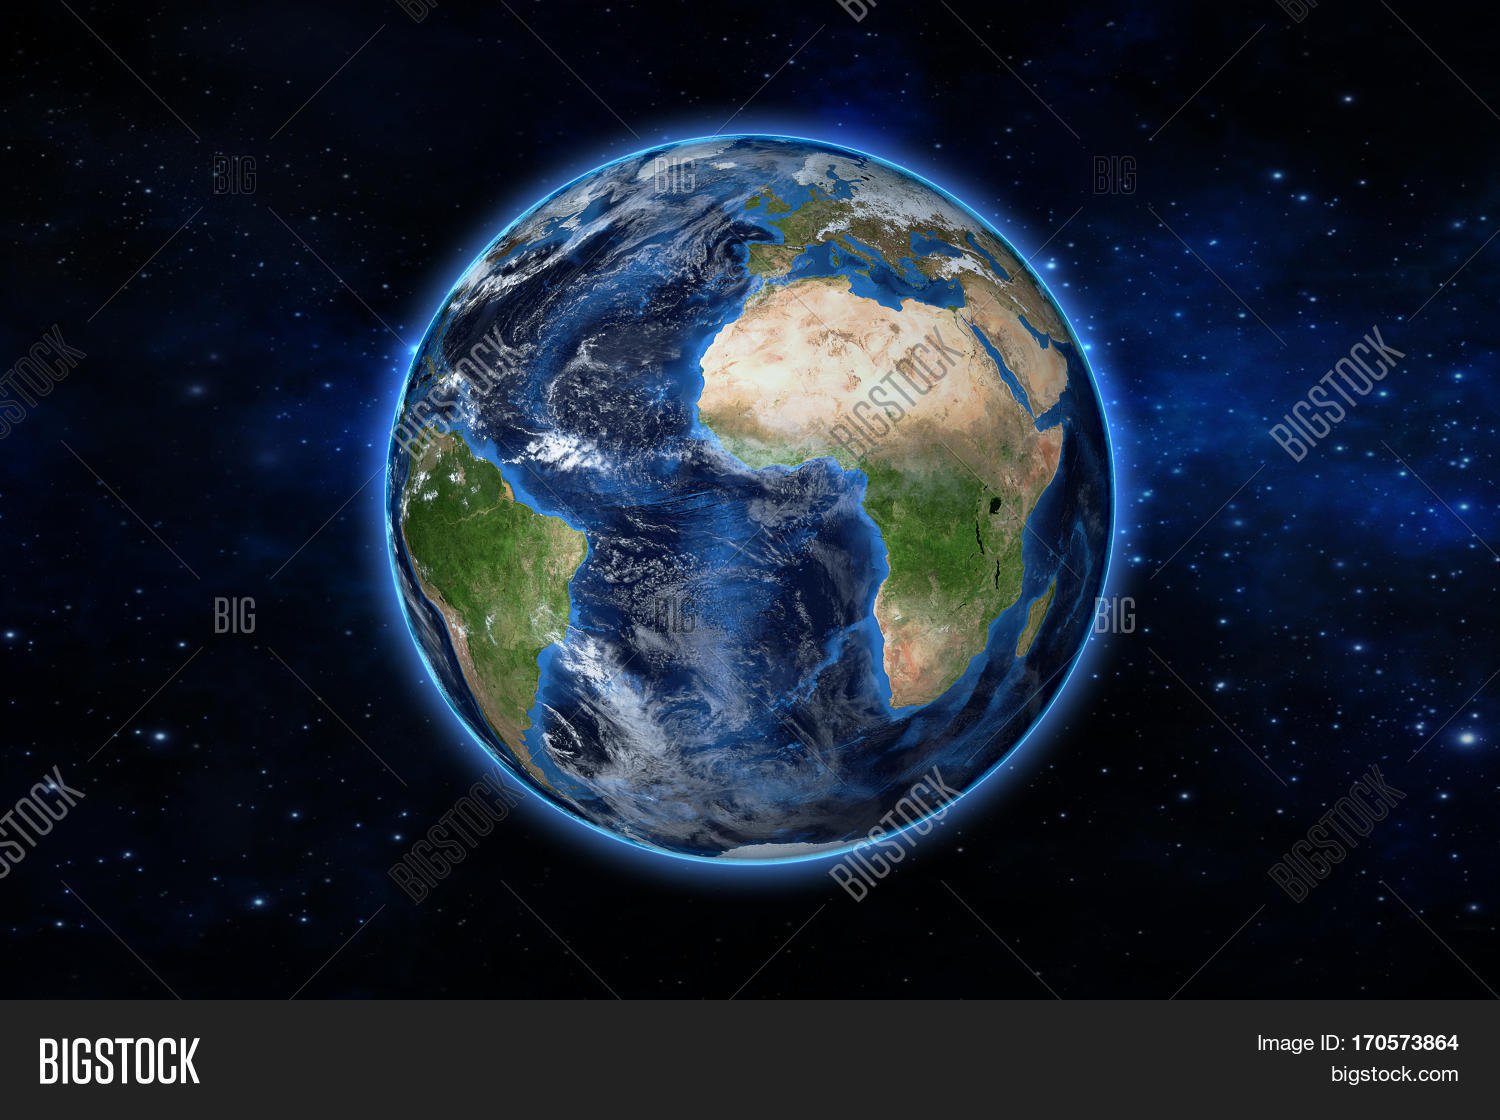 Blue Planet Earth Space Showing Image Photo Bigstock - Globe of usa